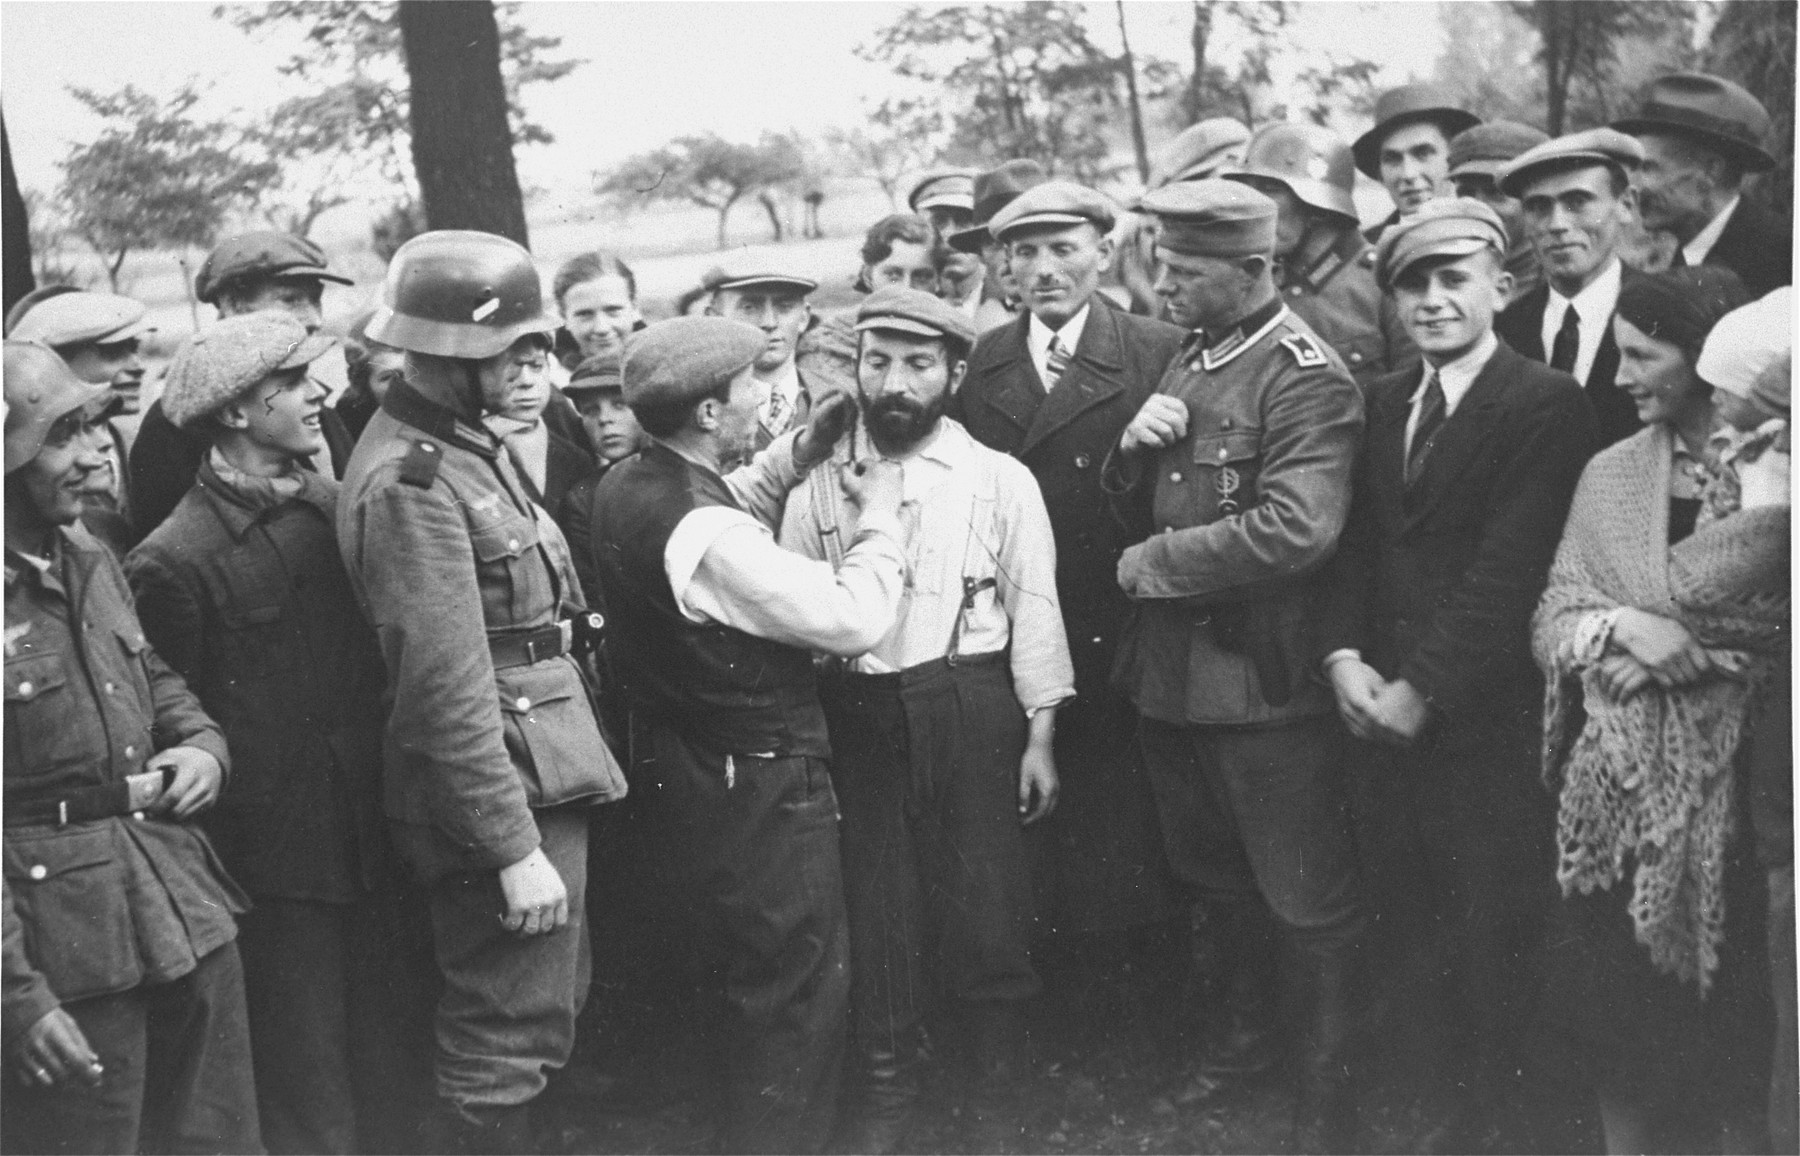 A group of German soldiers and civilians look on as a Jewish man is forced to cut the beard of another in Tomaszow Mazowiecki.